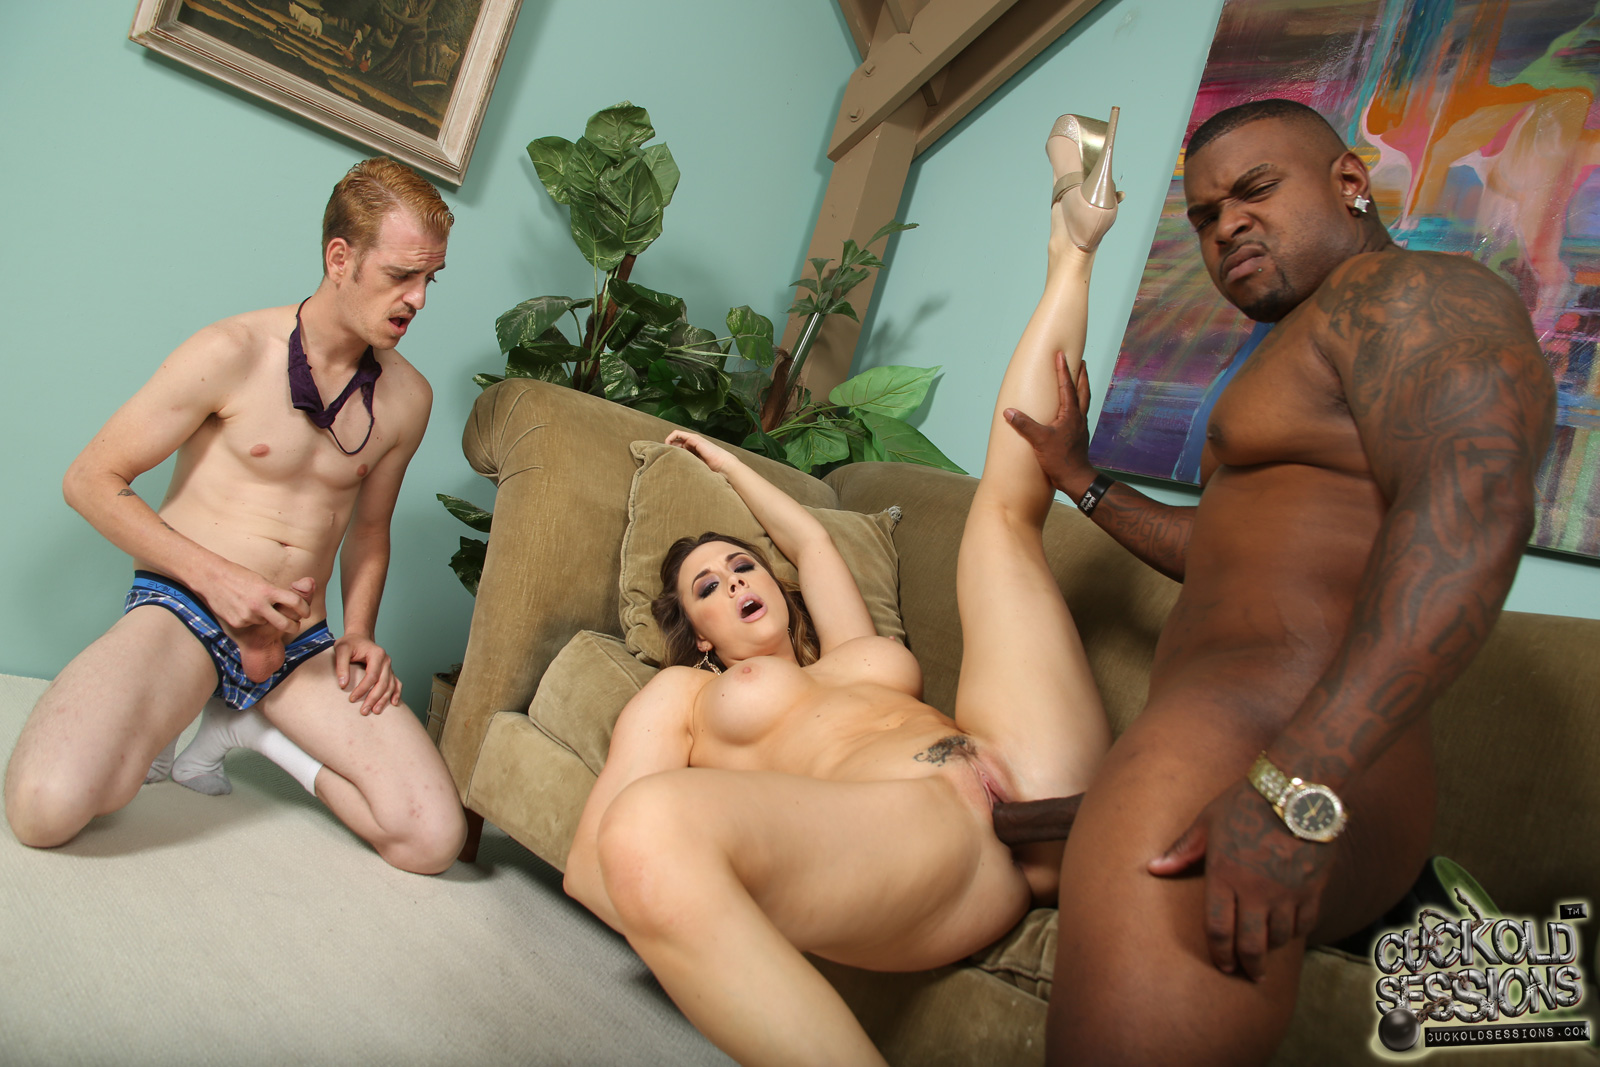 Milky Slut Black Cock Her Boypatron Was Cuckold On Her